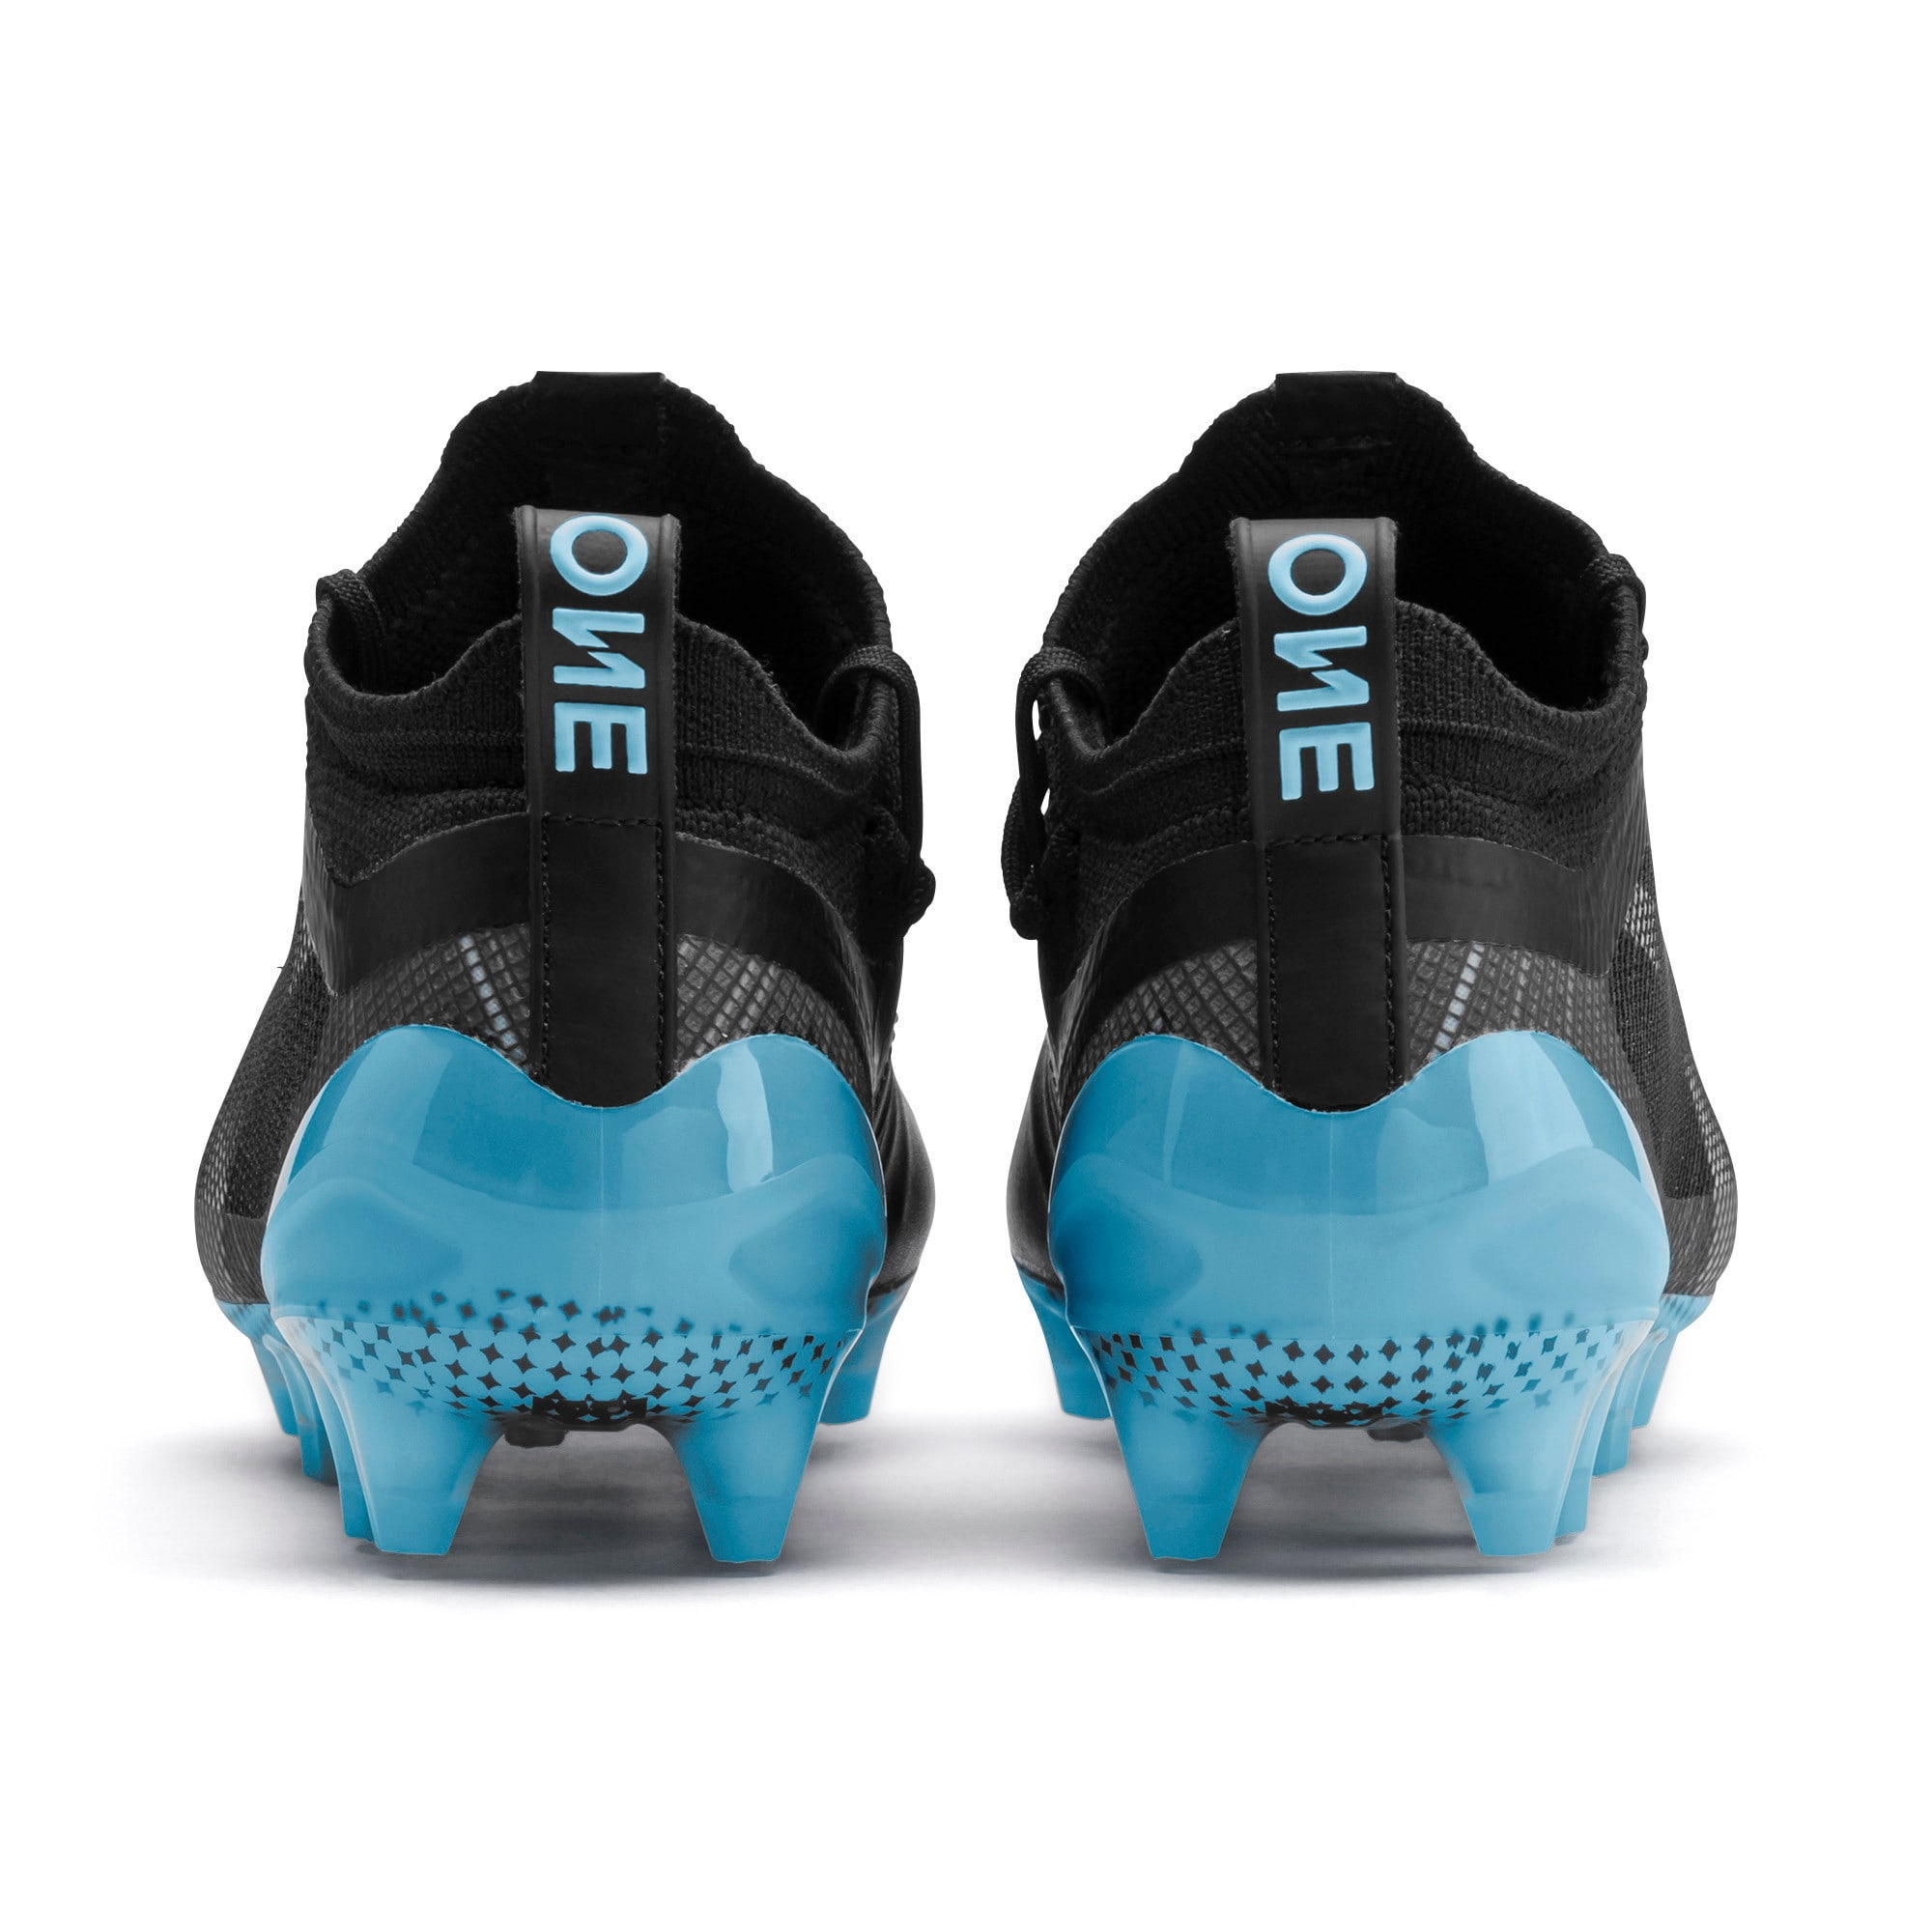 Thumbnail 3 of PUMA ONE 5.1 City Youth Football Boots, Black-Sky Blue-Puma White, medium